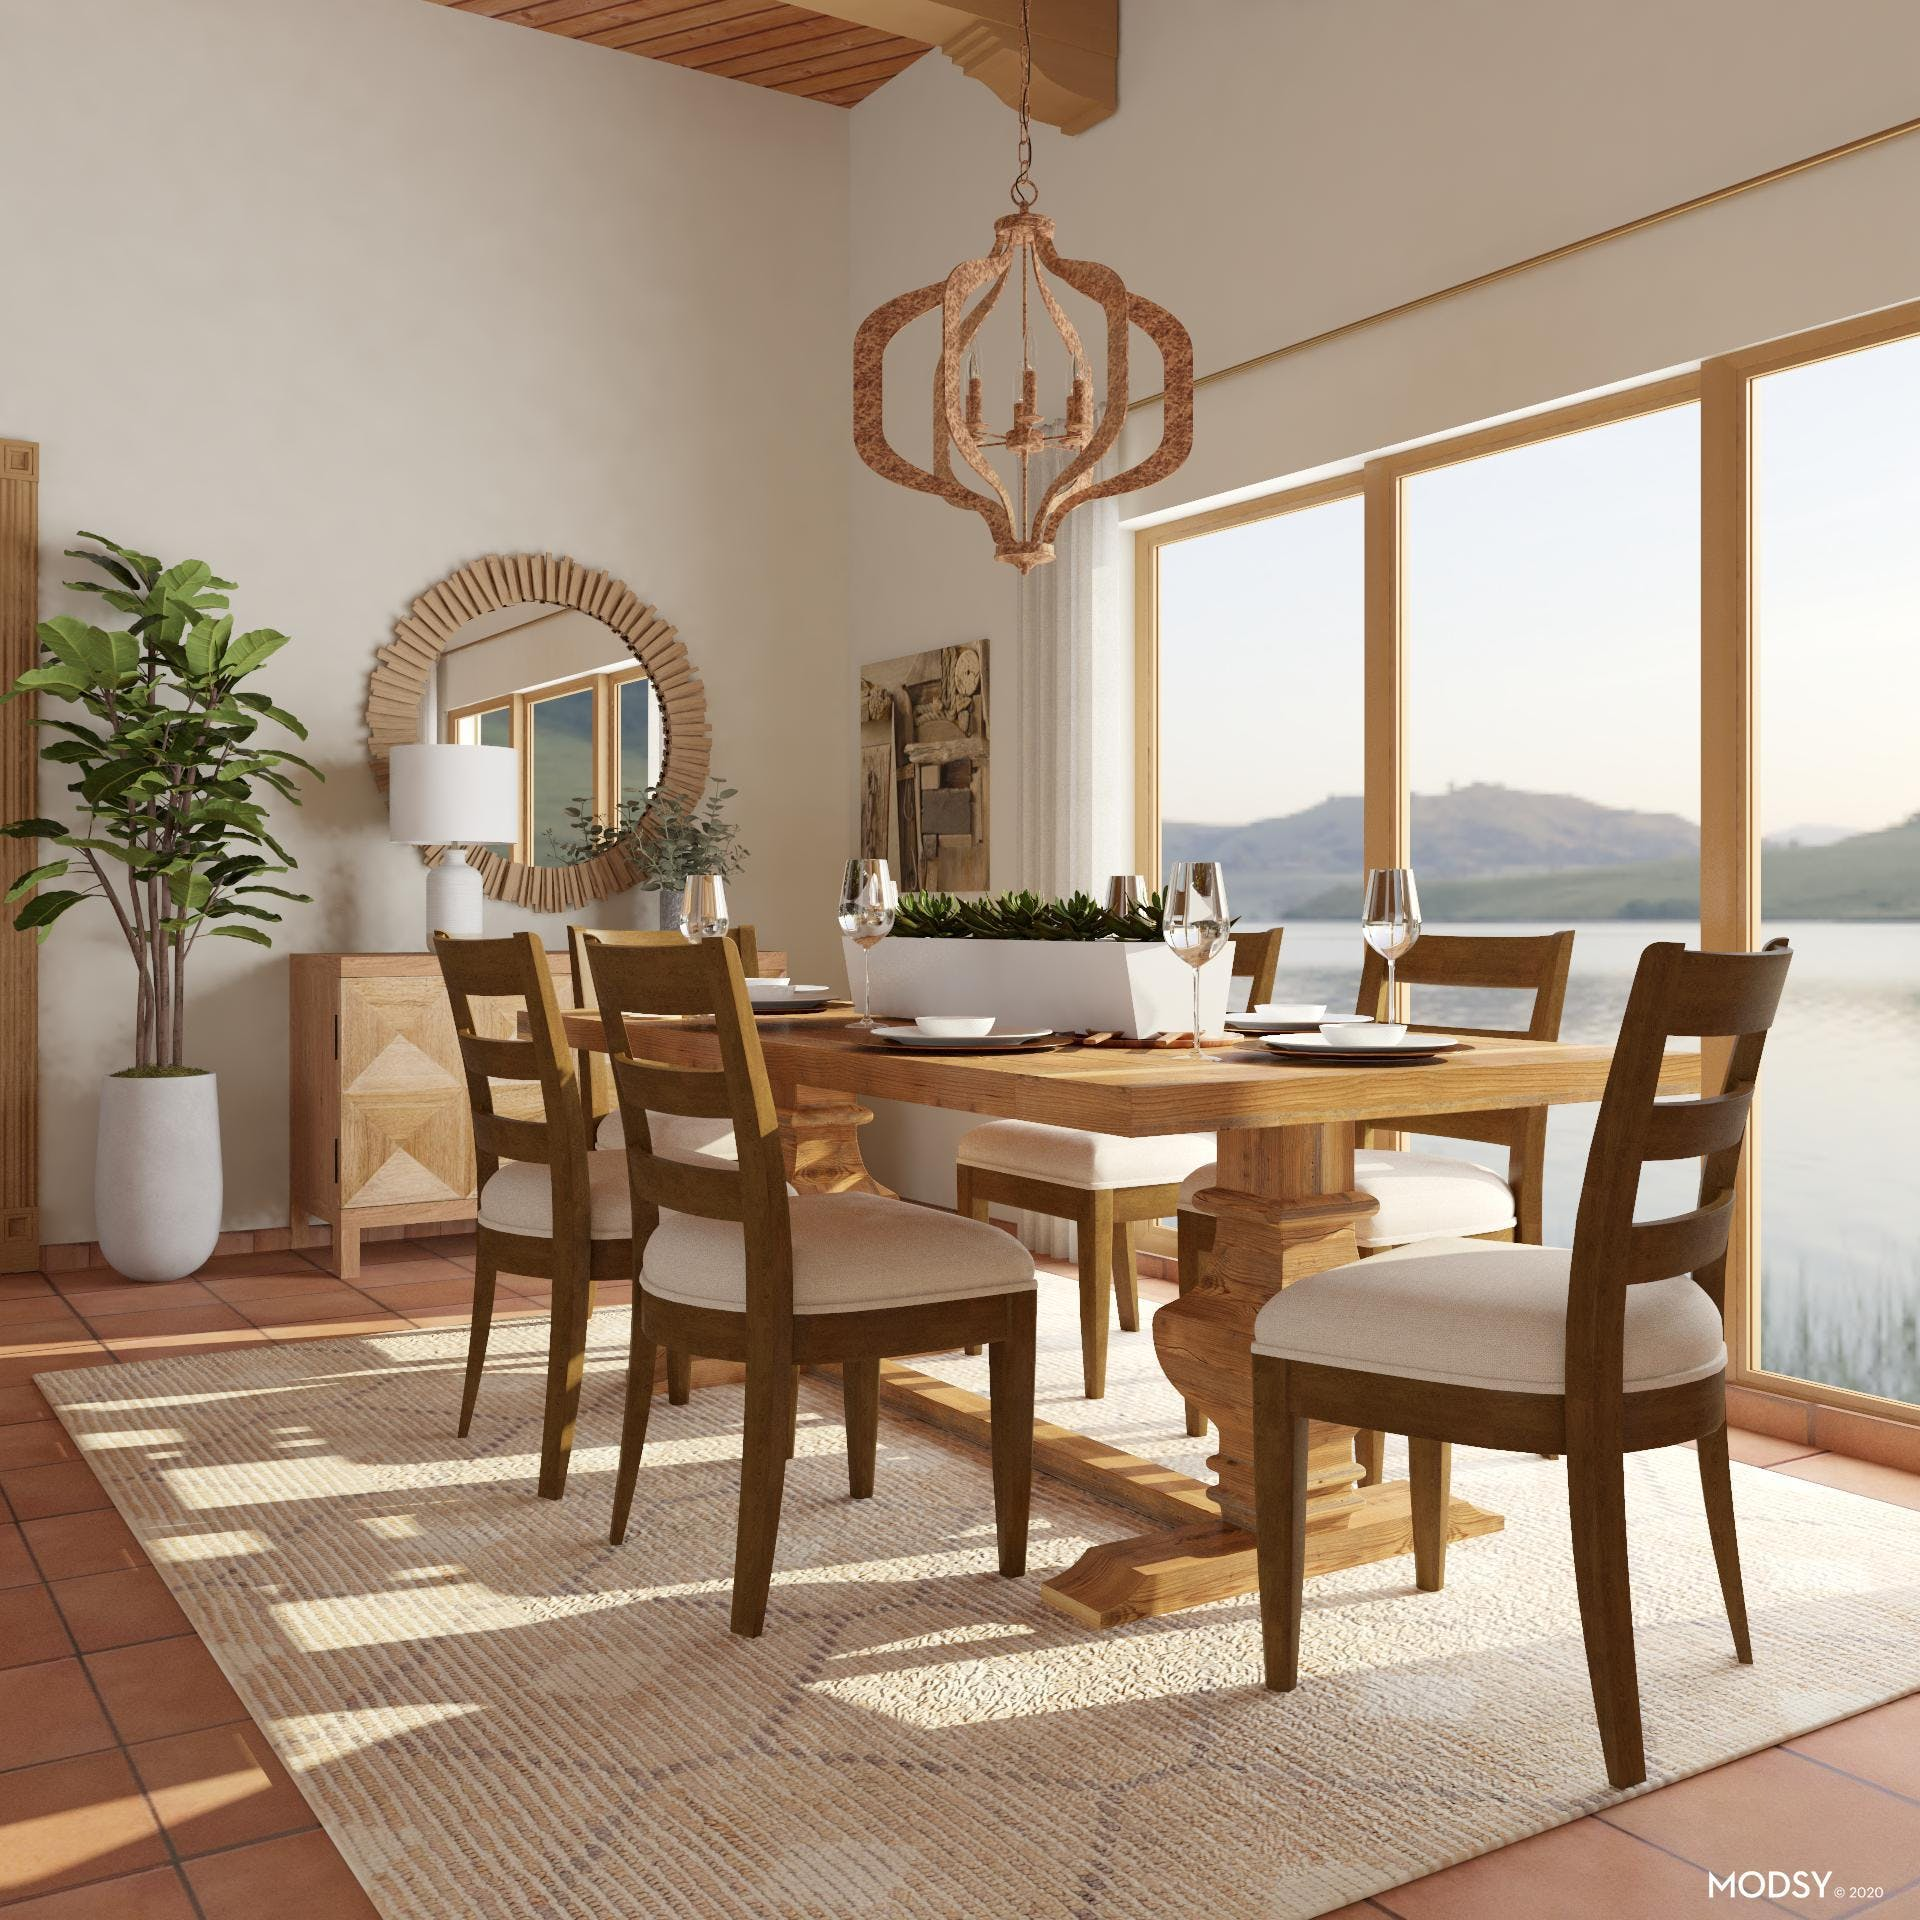 Rustic Dining Where Pets Are Welcome